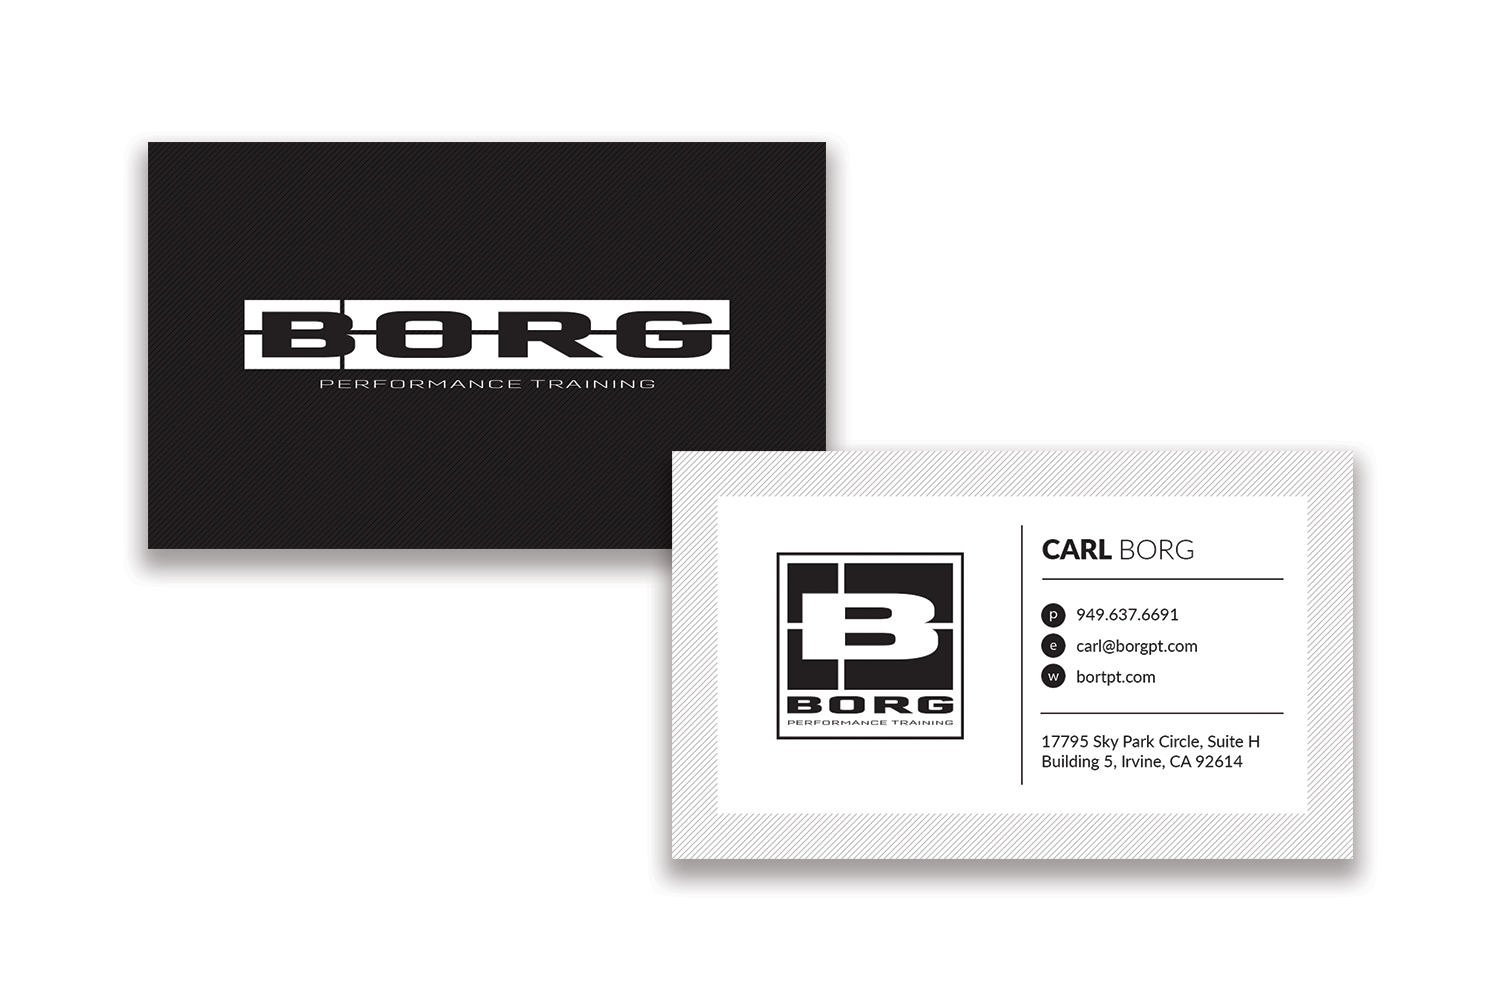 BORG Performance Training | Business Cards